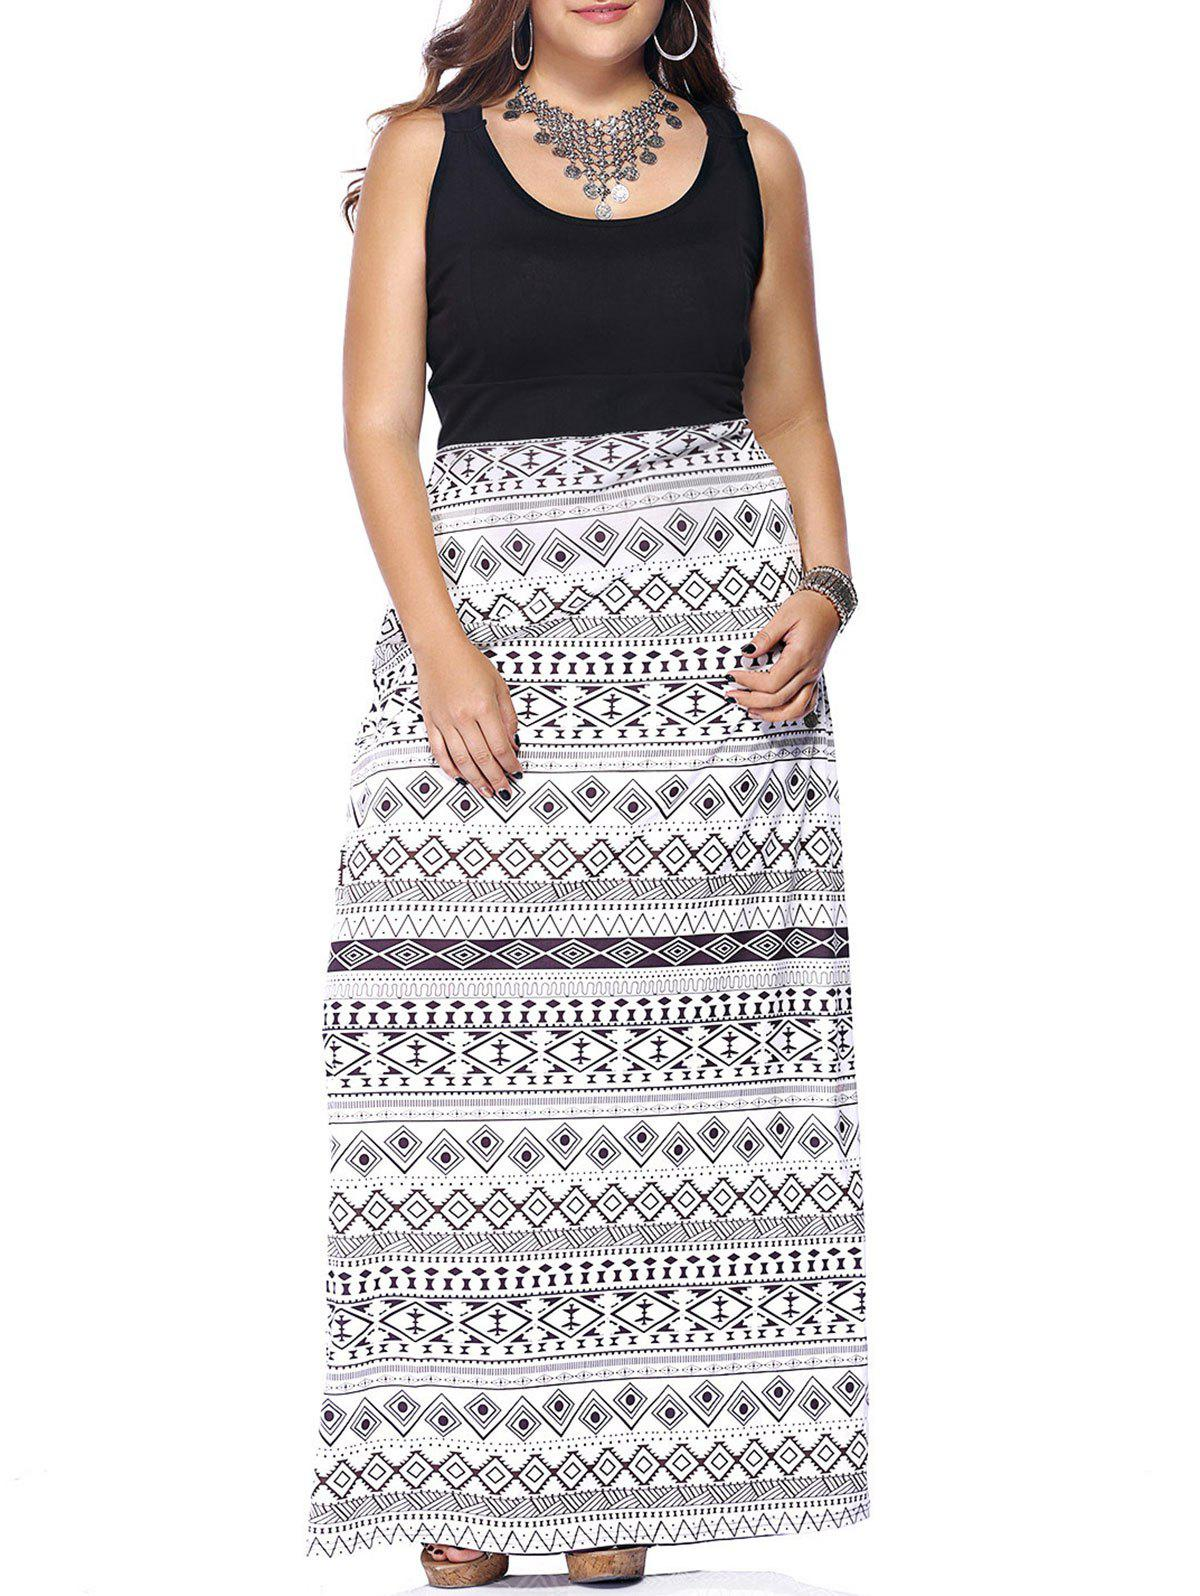 Fashionable Scoop Neck Sleeveless Hollow Out Plus Size Print Dress For Women